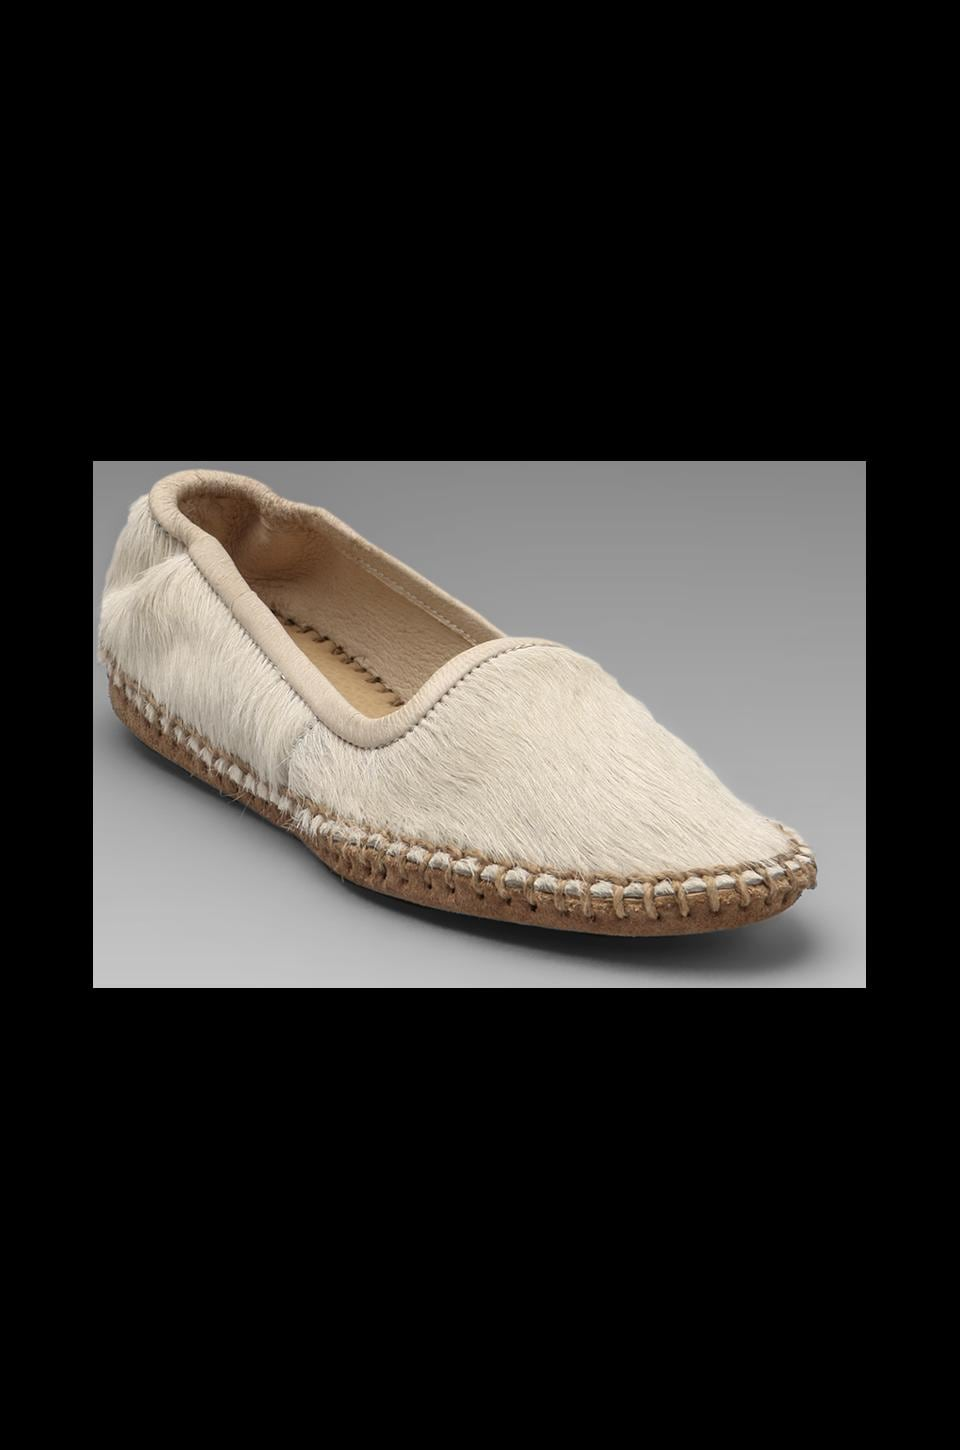 ANINE BING Moccasin with Calf Fur in Cream